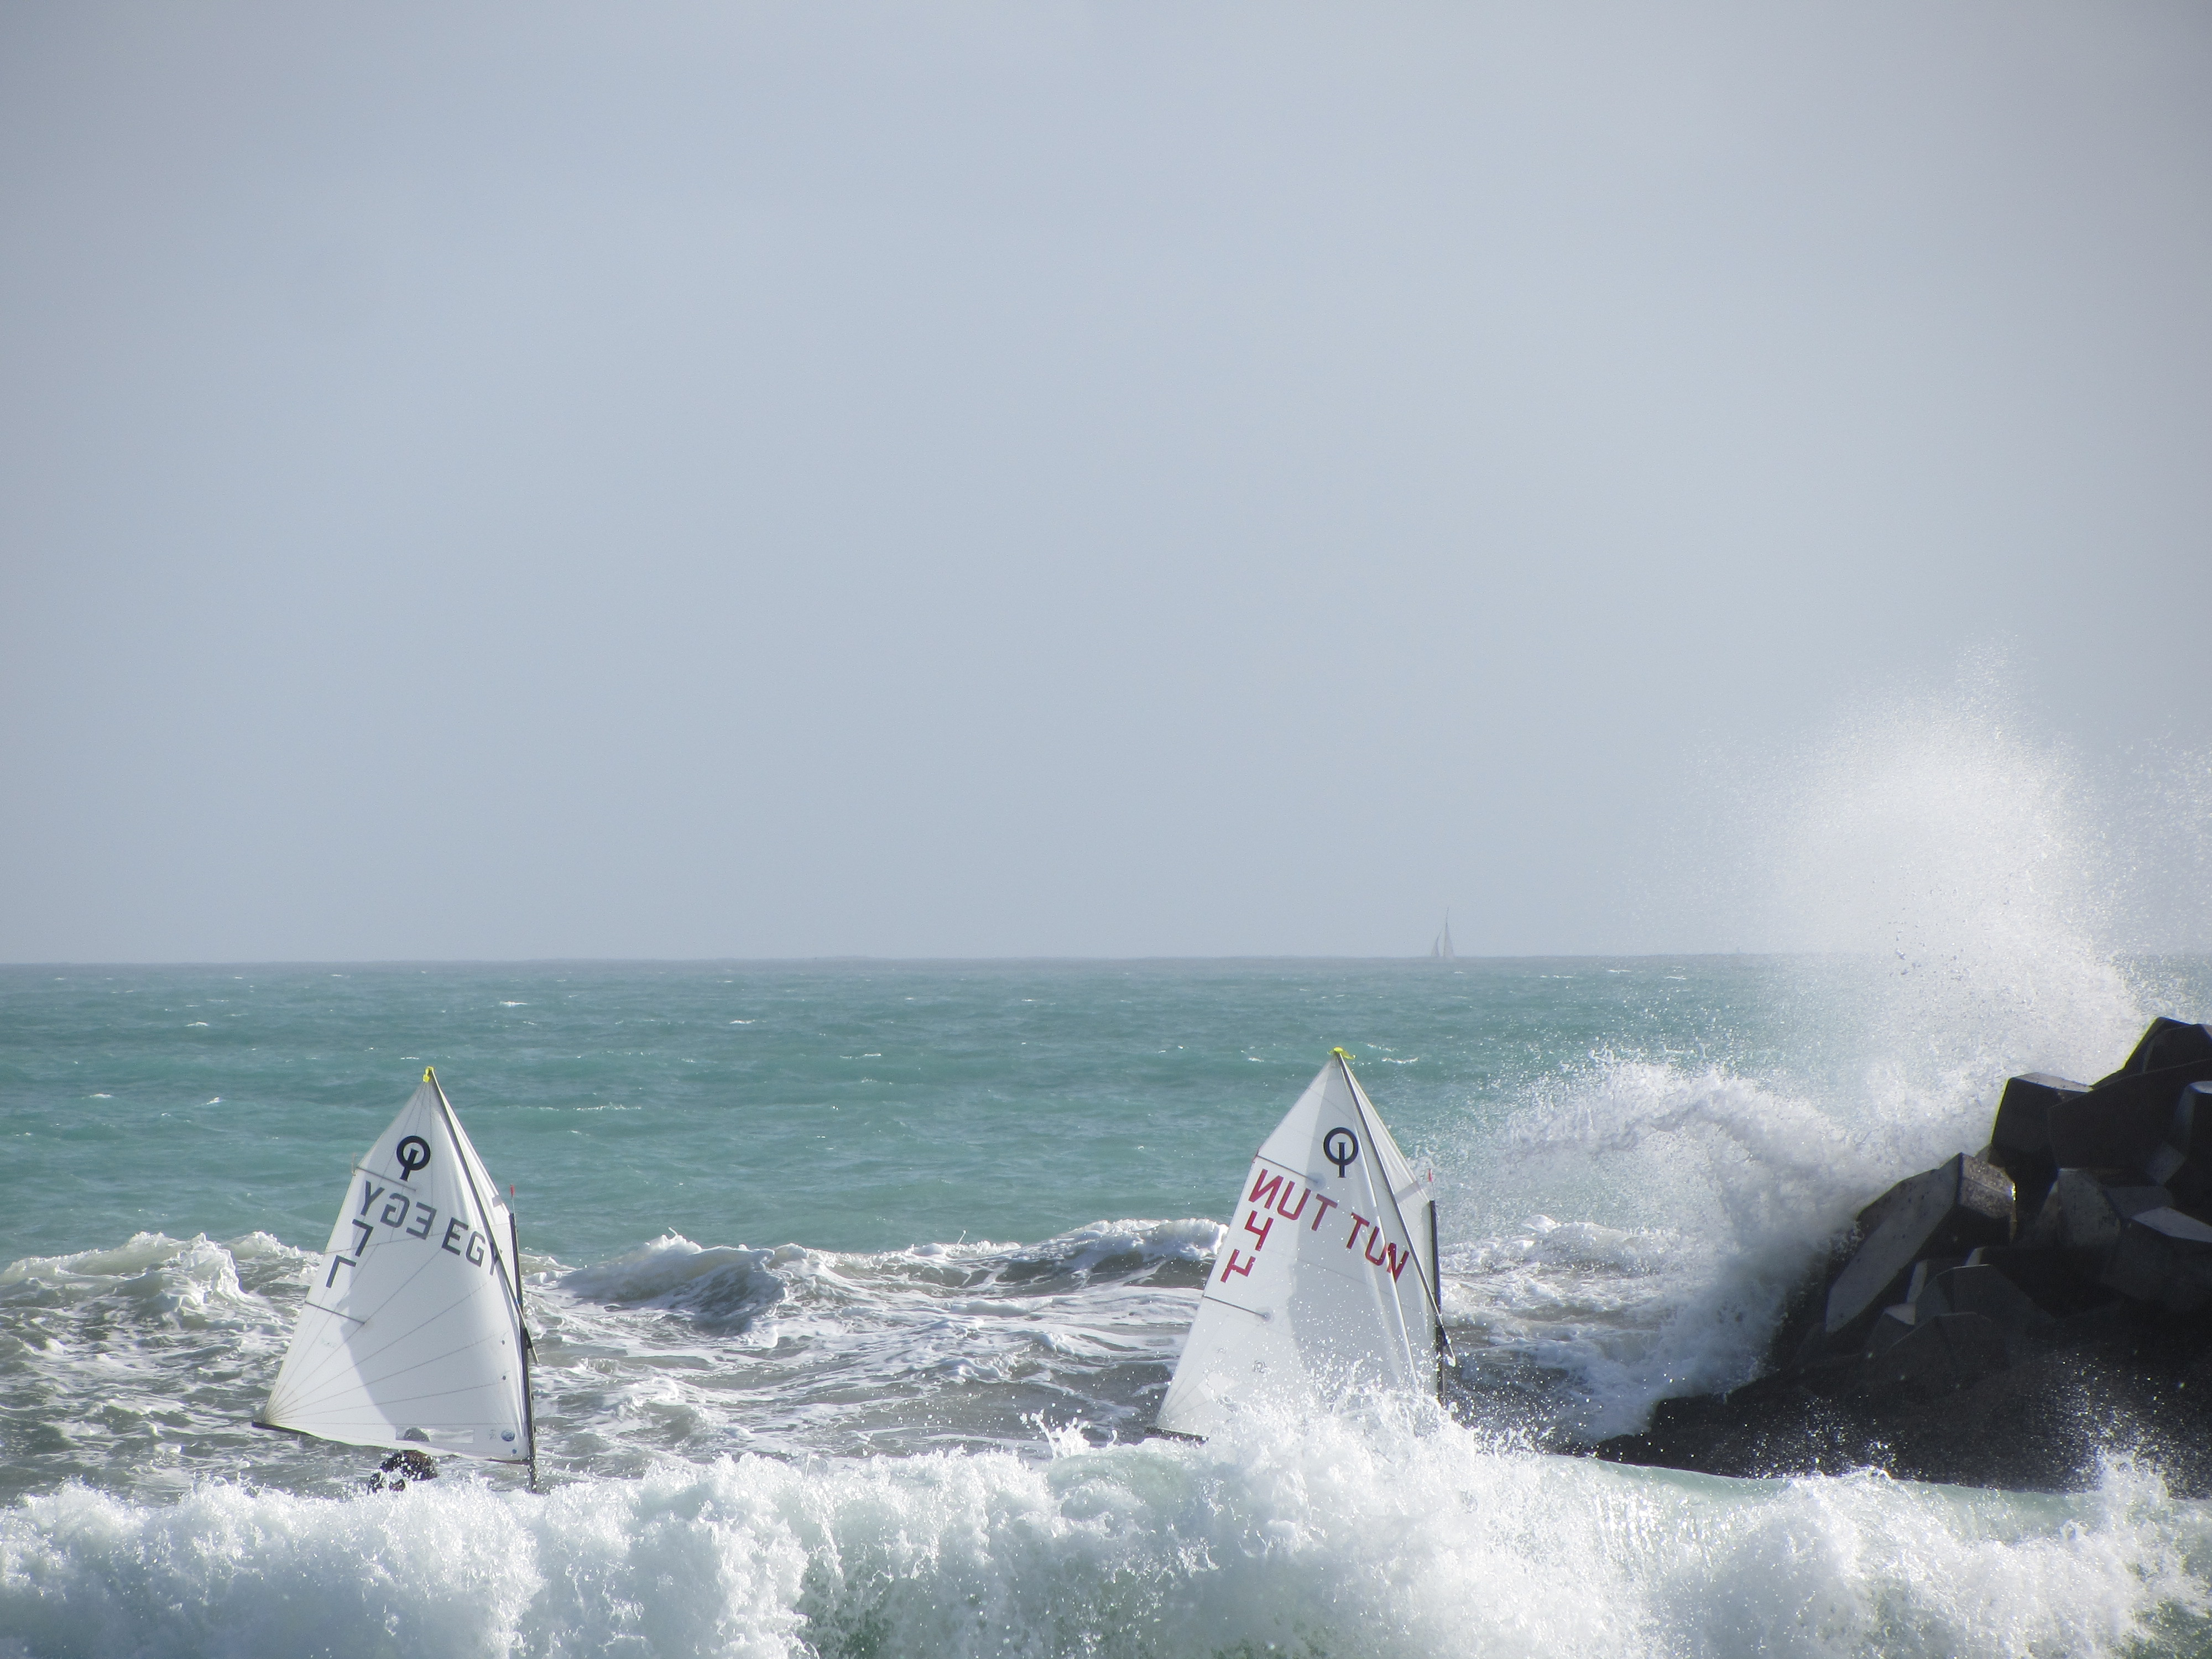 African Optimist Champs South Africa 2013